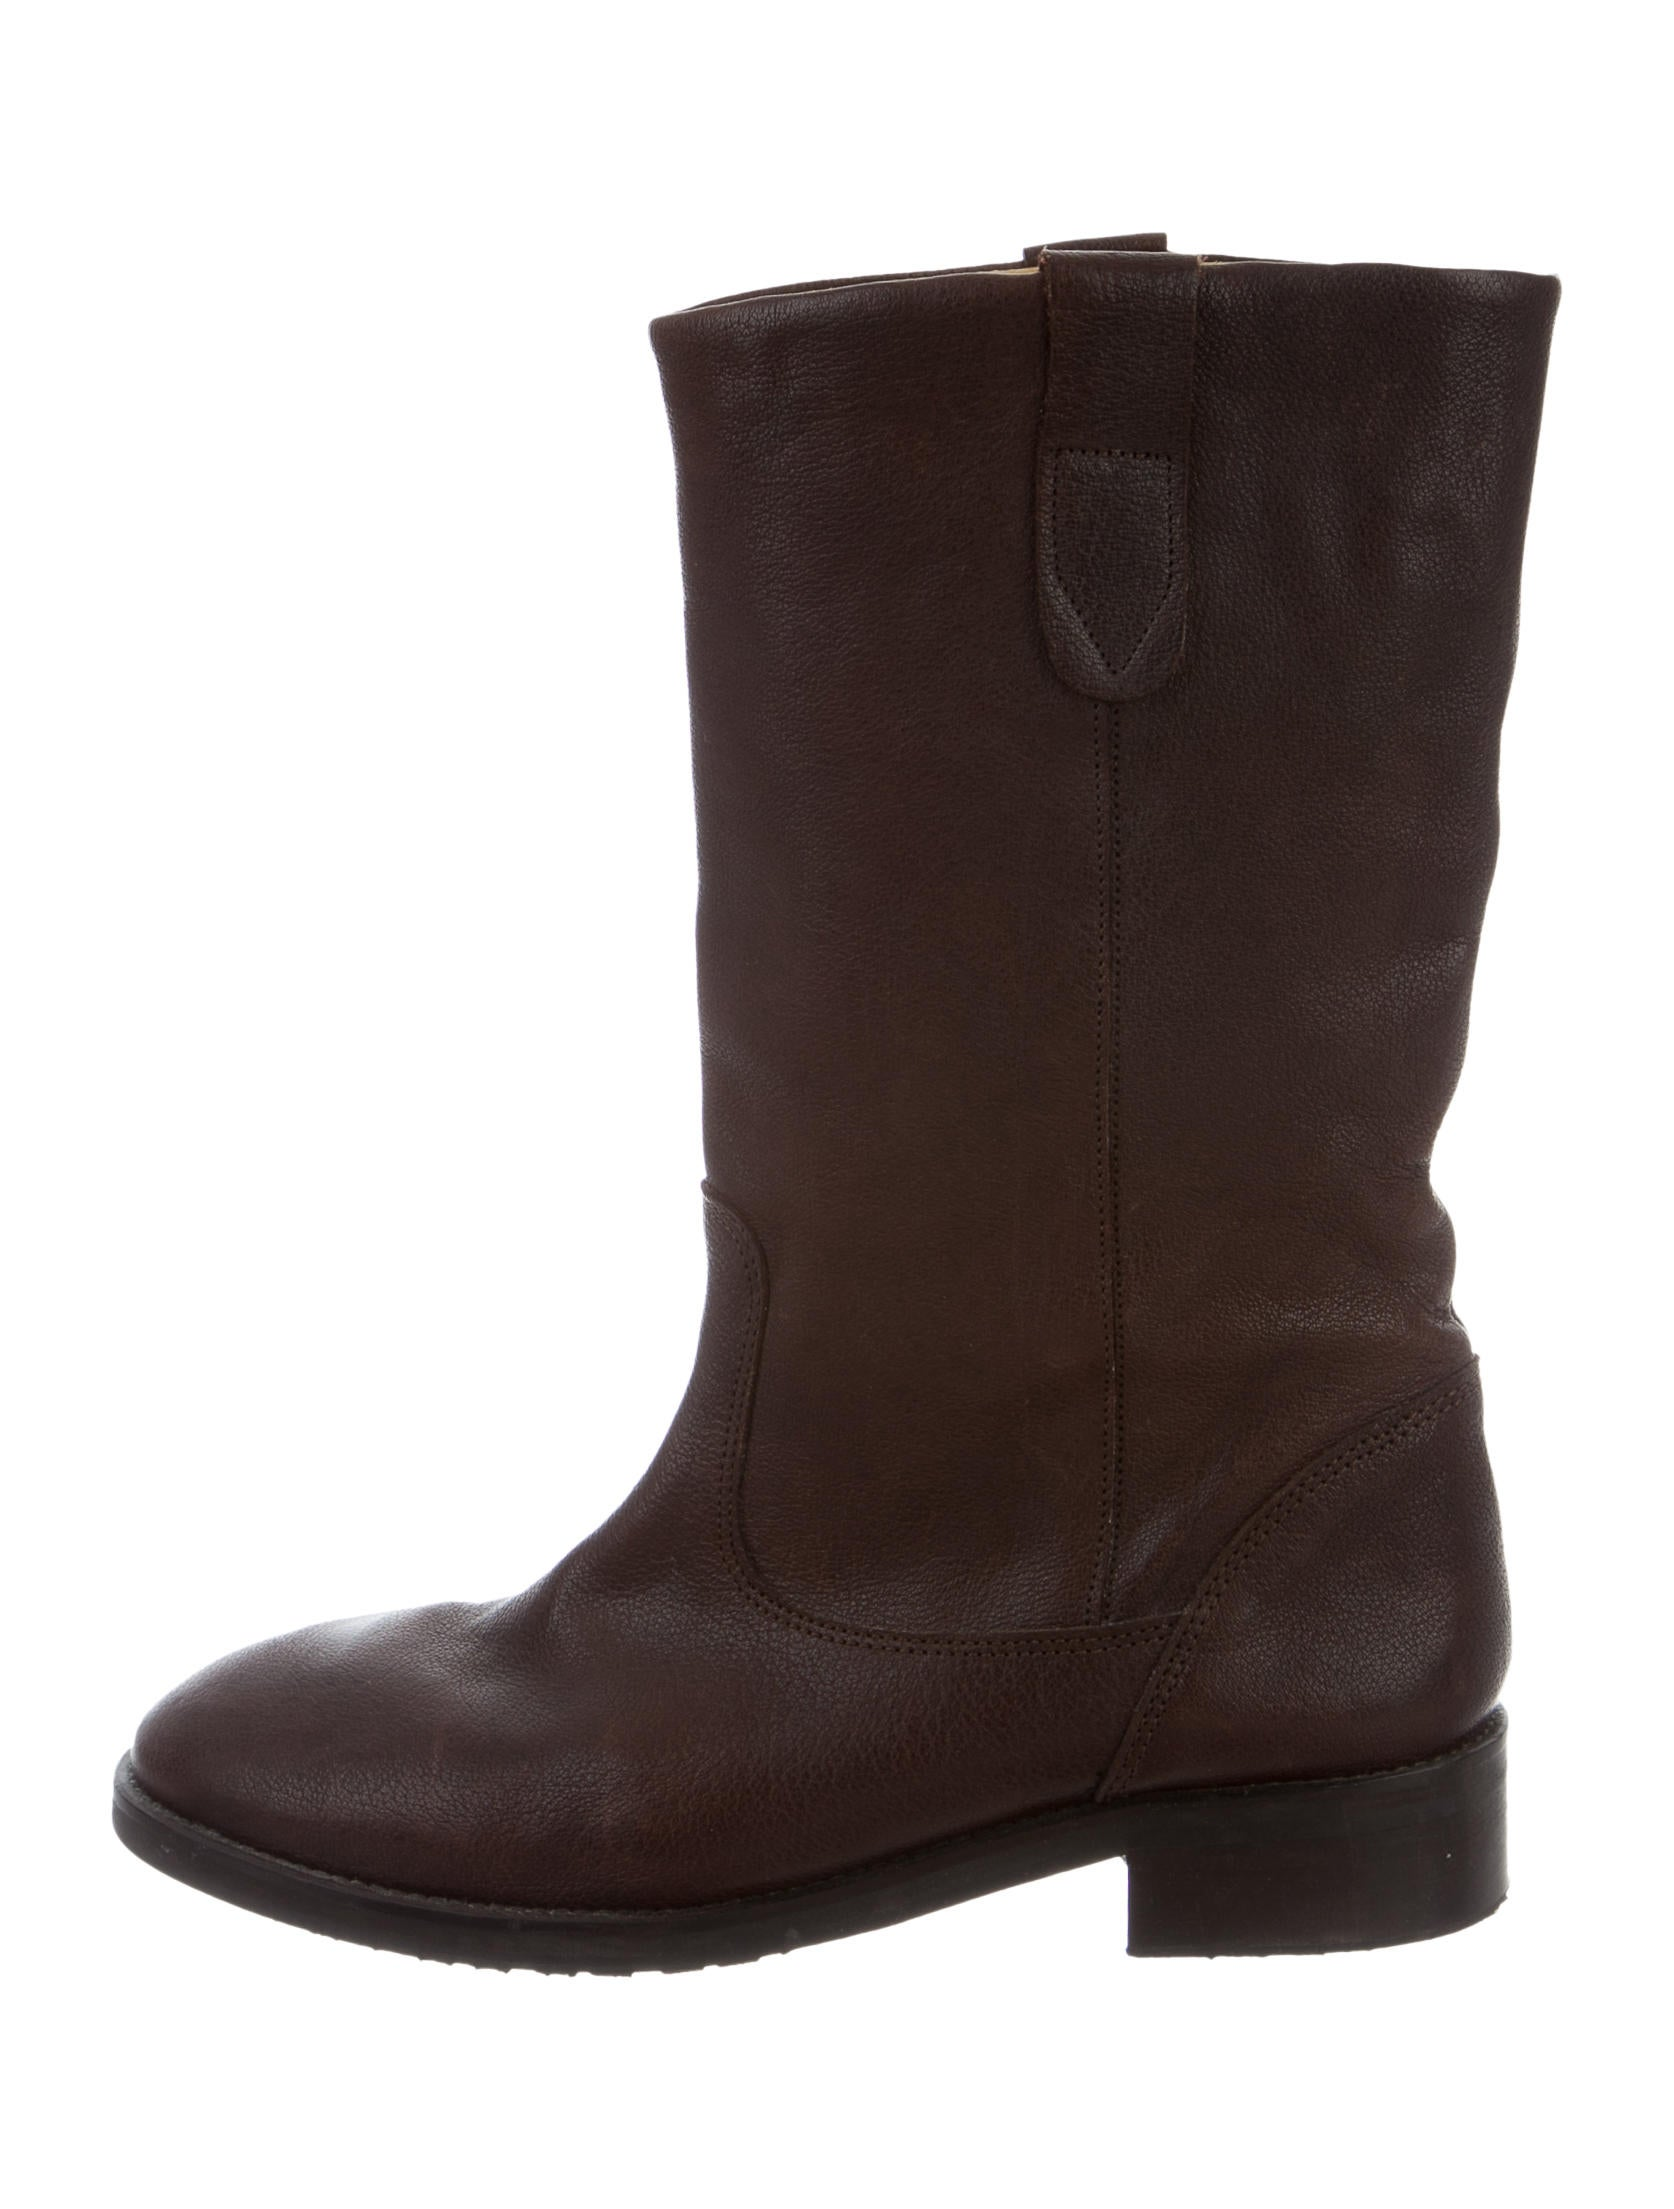 A.P.C. Leather Mid-Calf Boots for nice sale online largest supplier sale online WHkEr